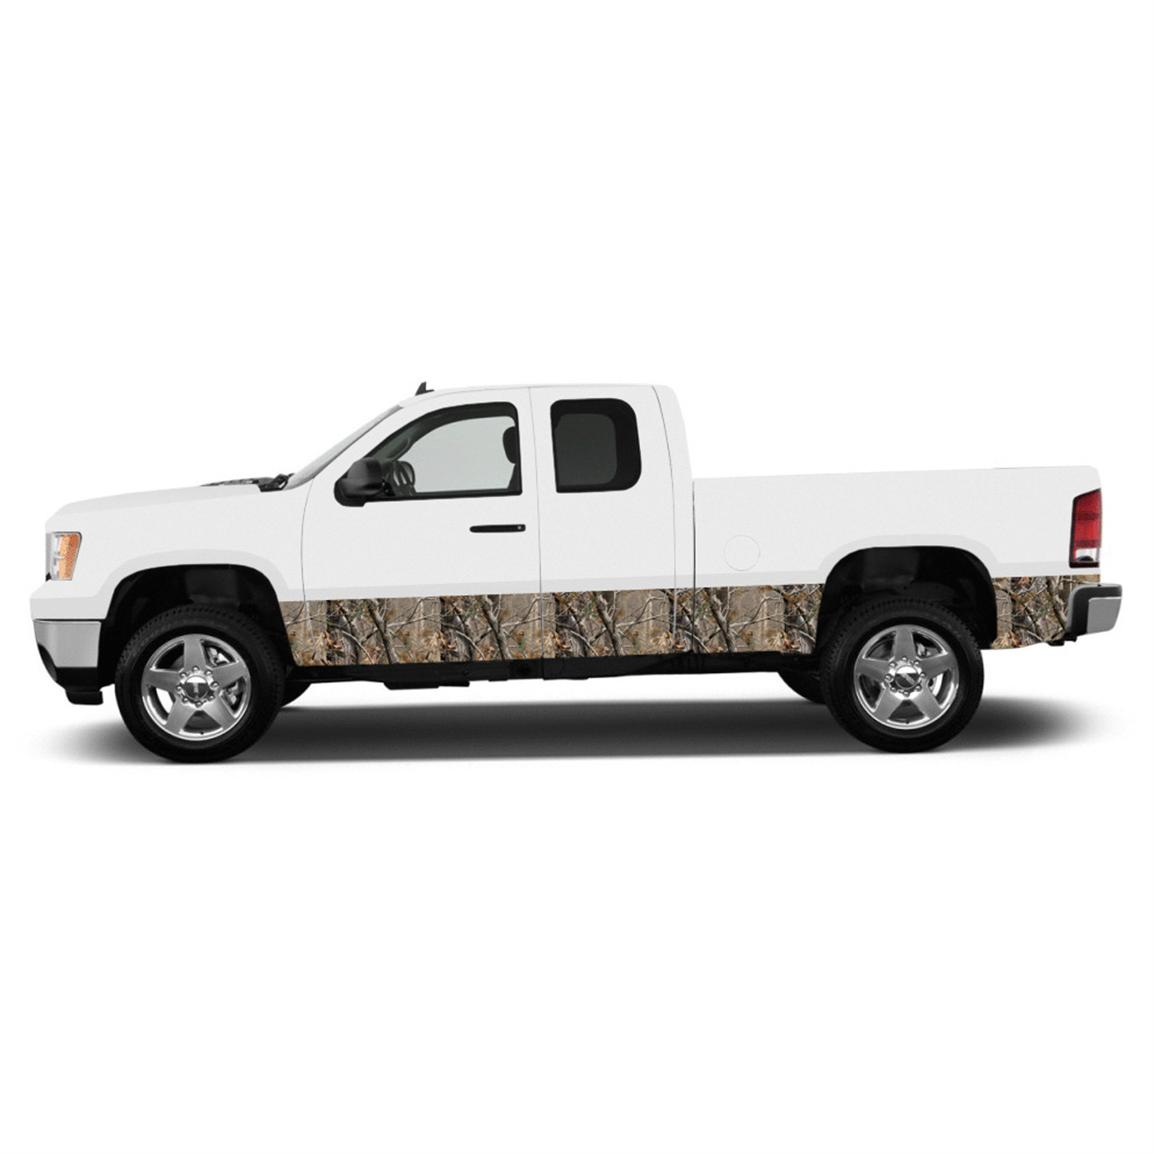 "Camowraps® Premium Rocker Panel 16"" Camo Accent Kit for Full-size Pickup Trucks, Realtree All Purpose"